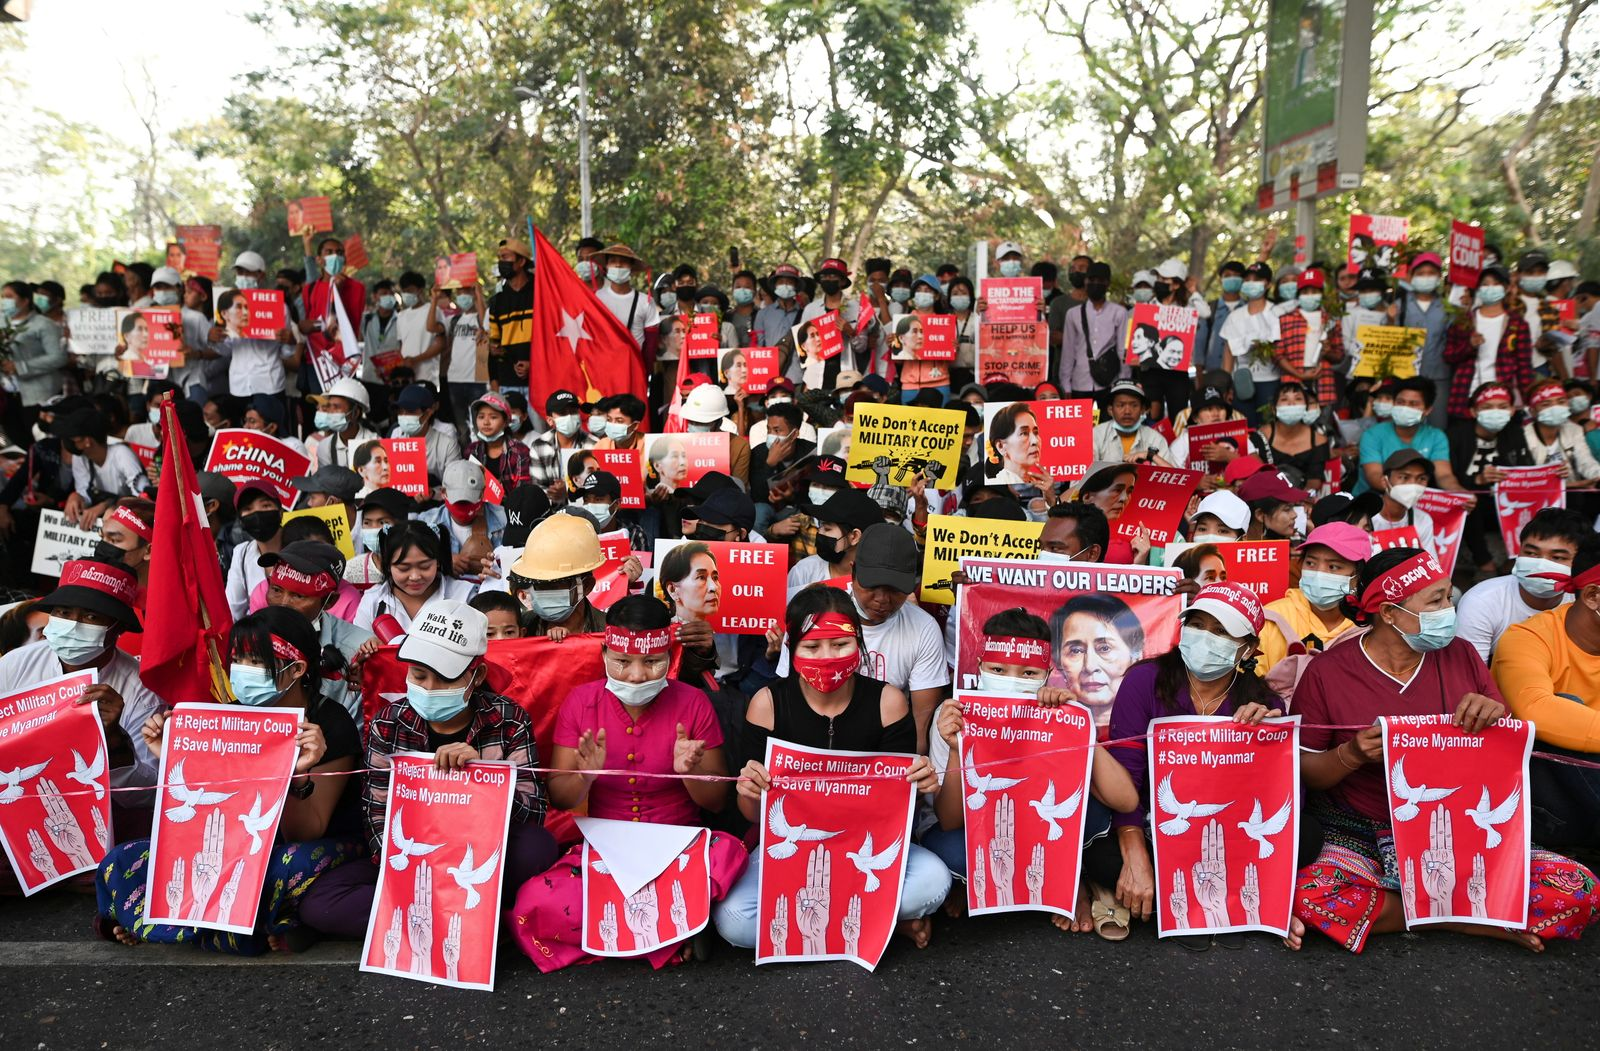 Demonstrators protest against military coup